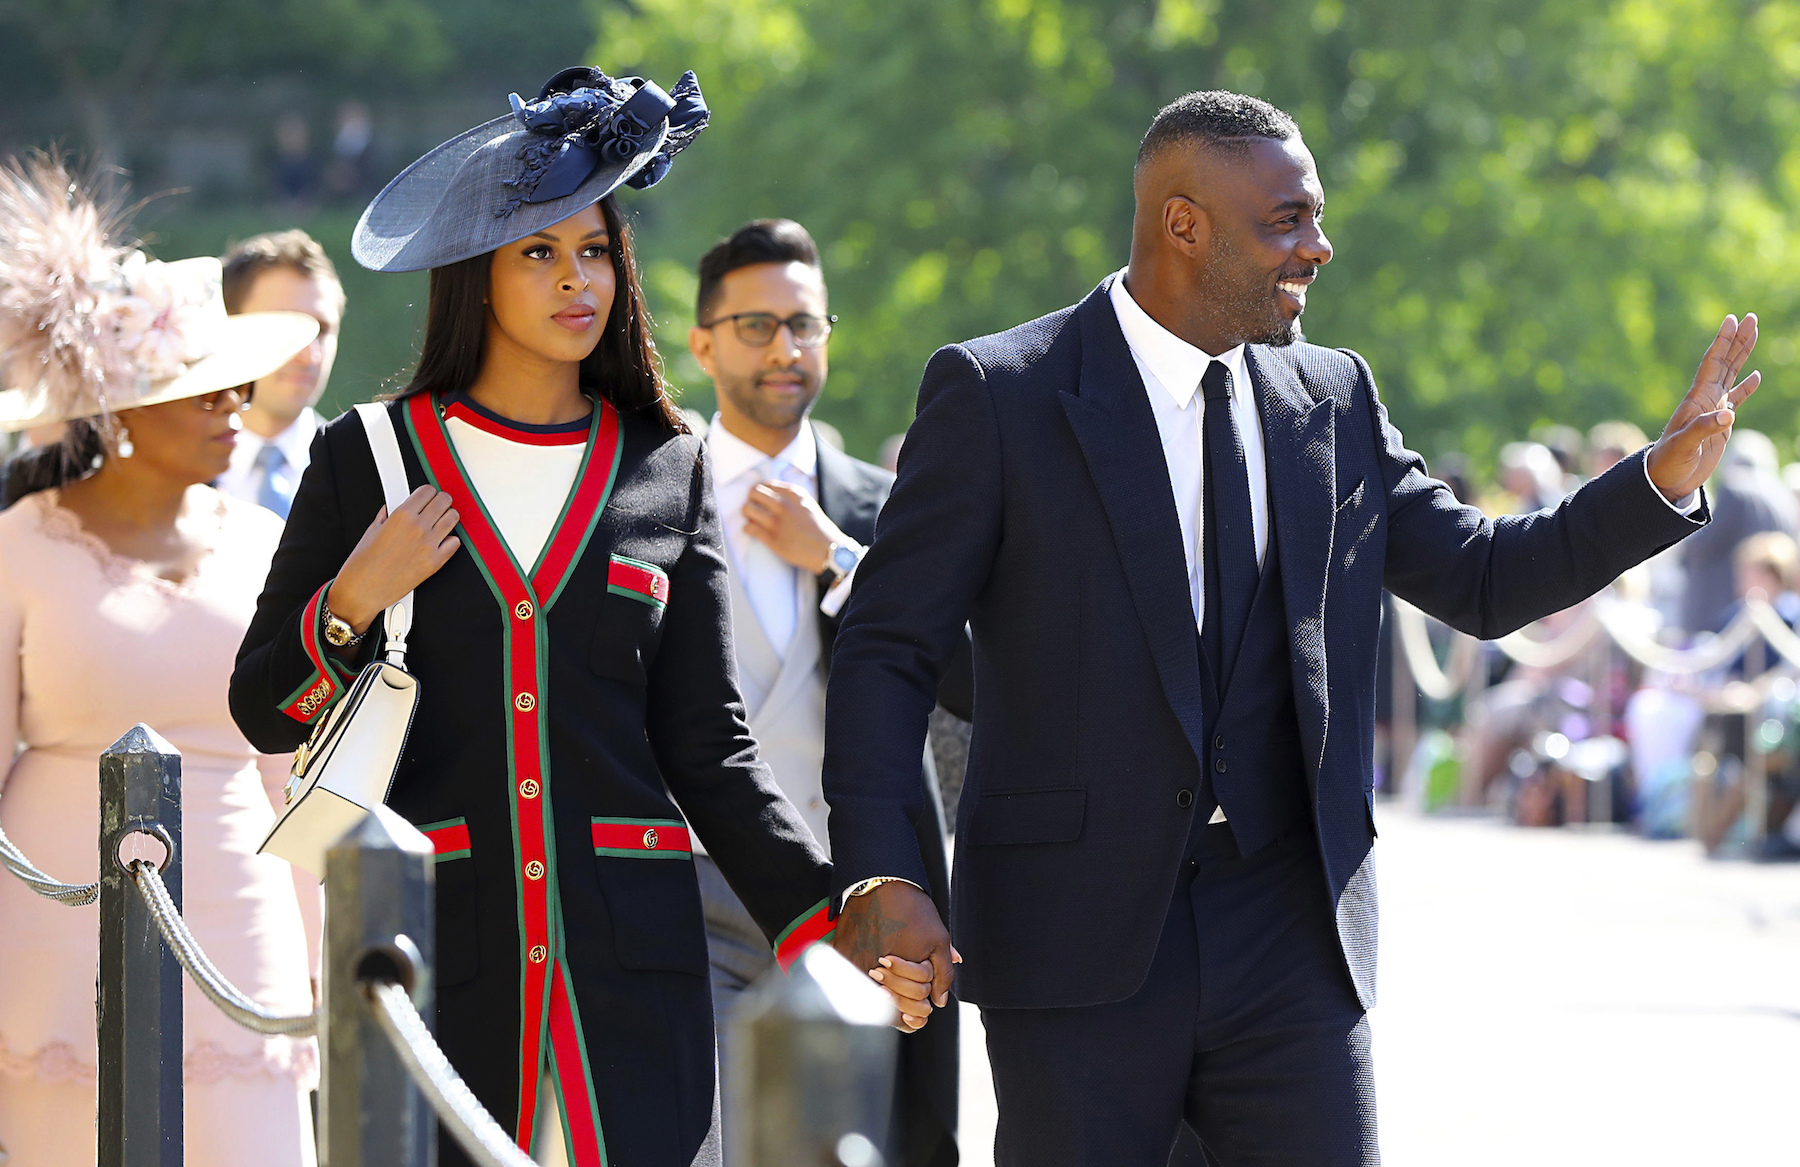 <div class='meta'><div class='origin-logo' data-origin='AP'></div><span class='caption-text' data-credit='Gareth Fuller/PA Wire'>Idris Elba (right) and Sabrina Dhowre arrive at St George's Chapel at Windsor Castle for the wedding of Meghan Markle and Prince Harry.</span></div>